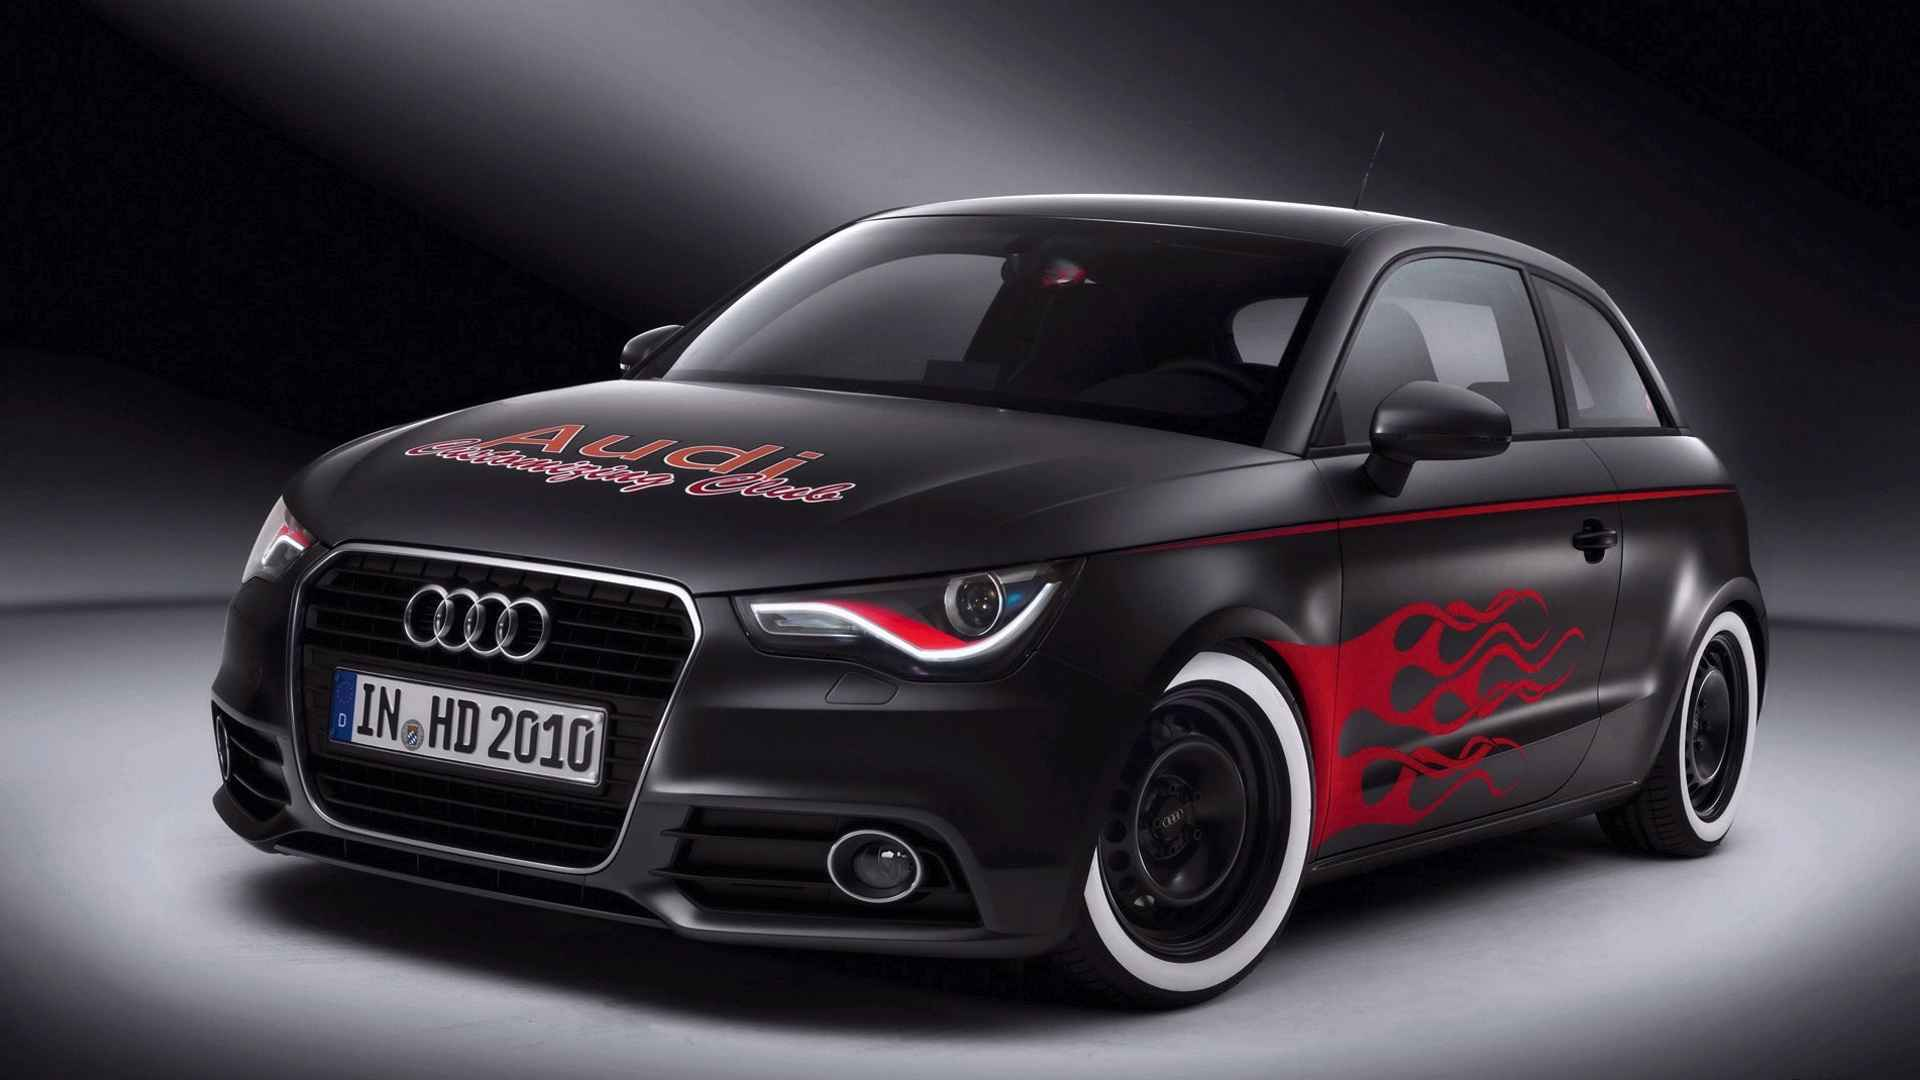 Cool HD Audi Wallpapers For Download 1920x1080